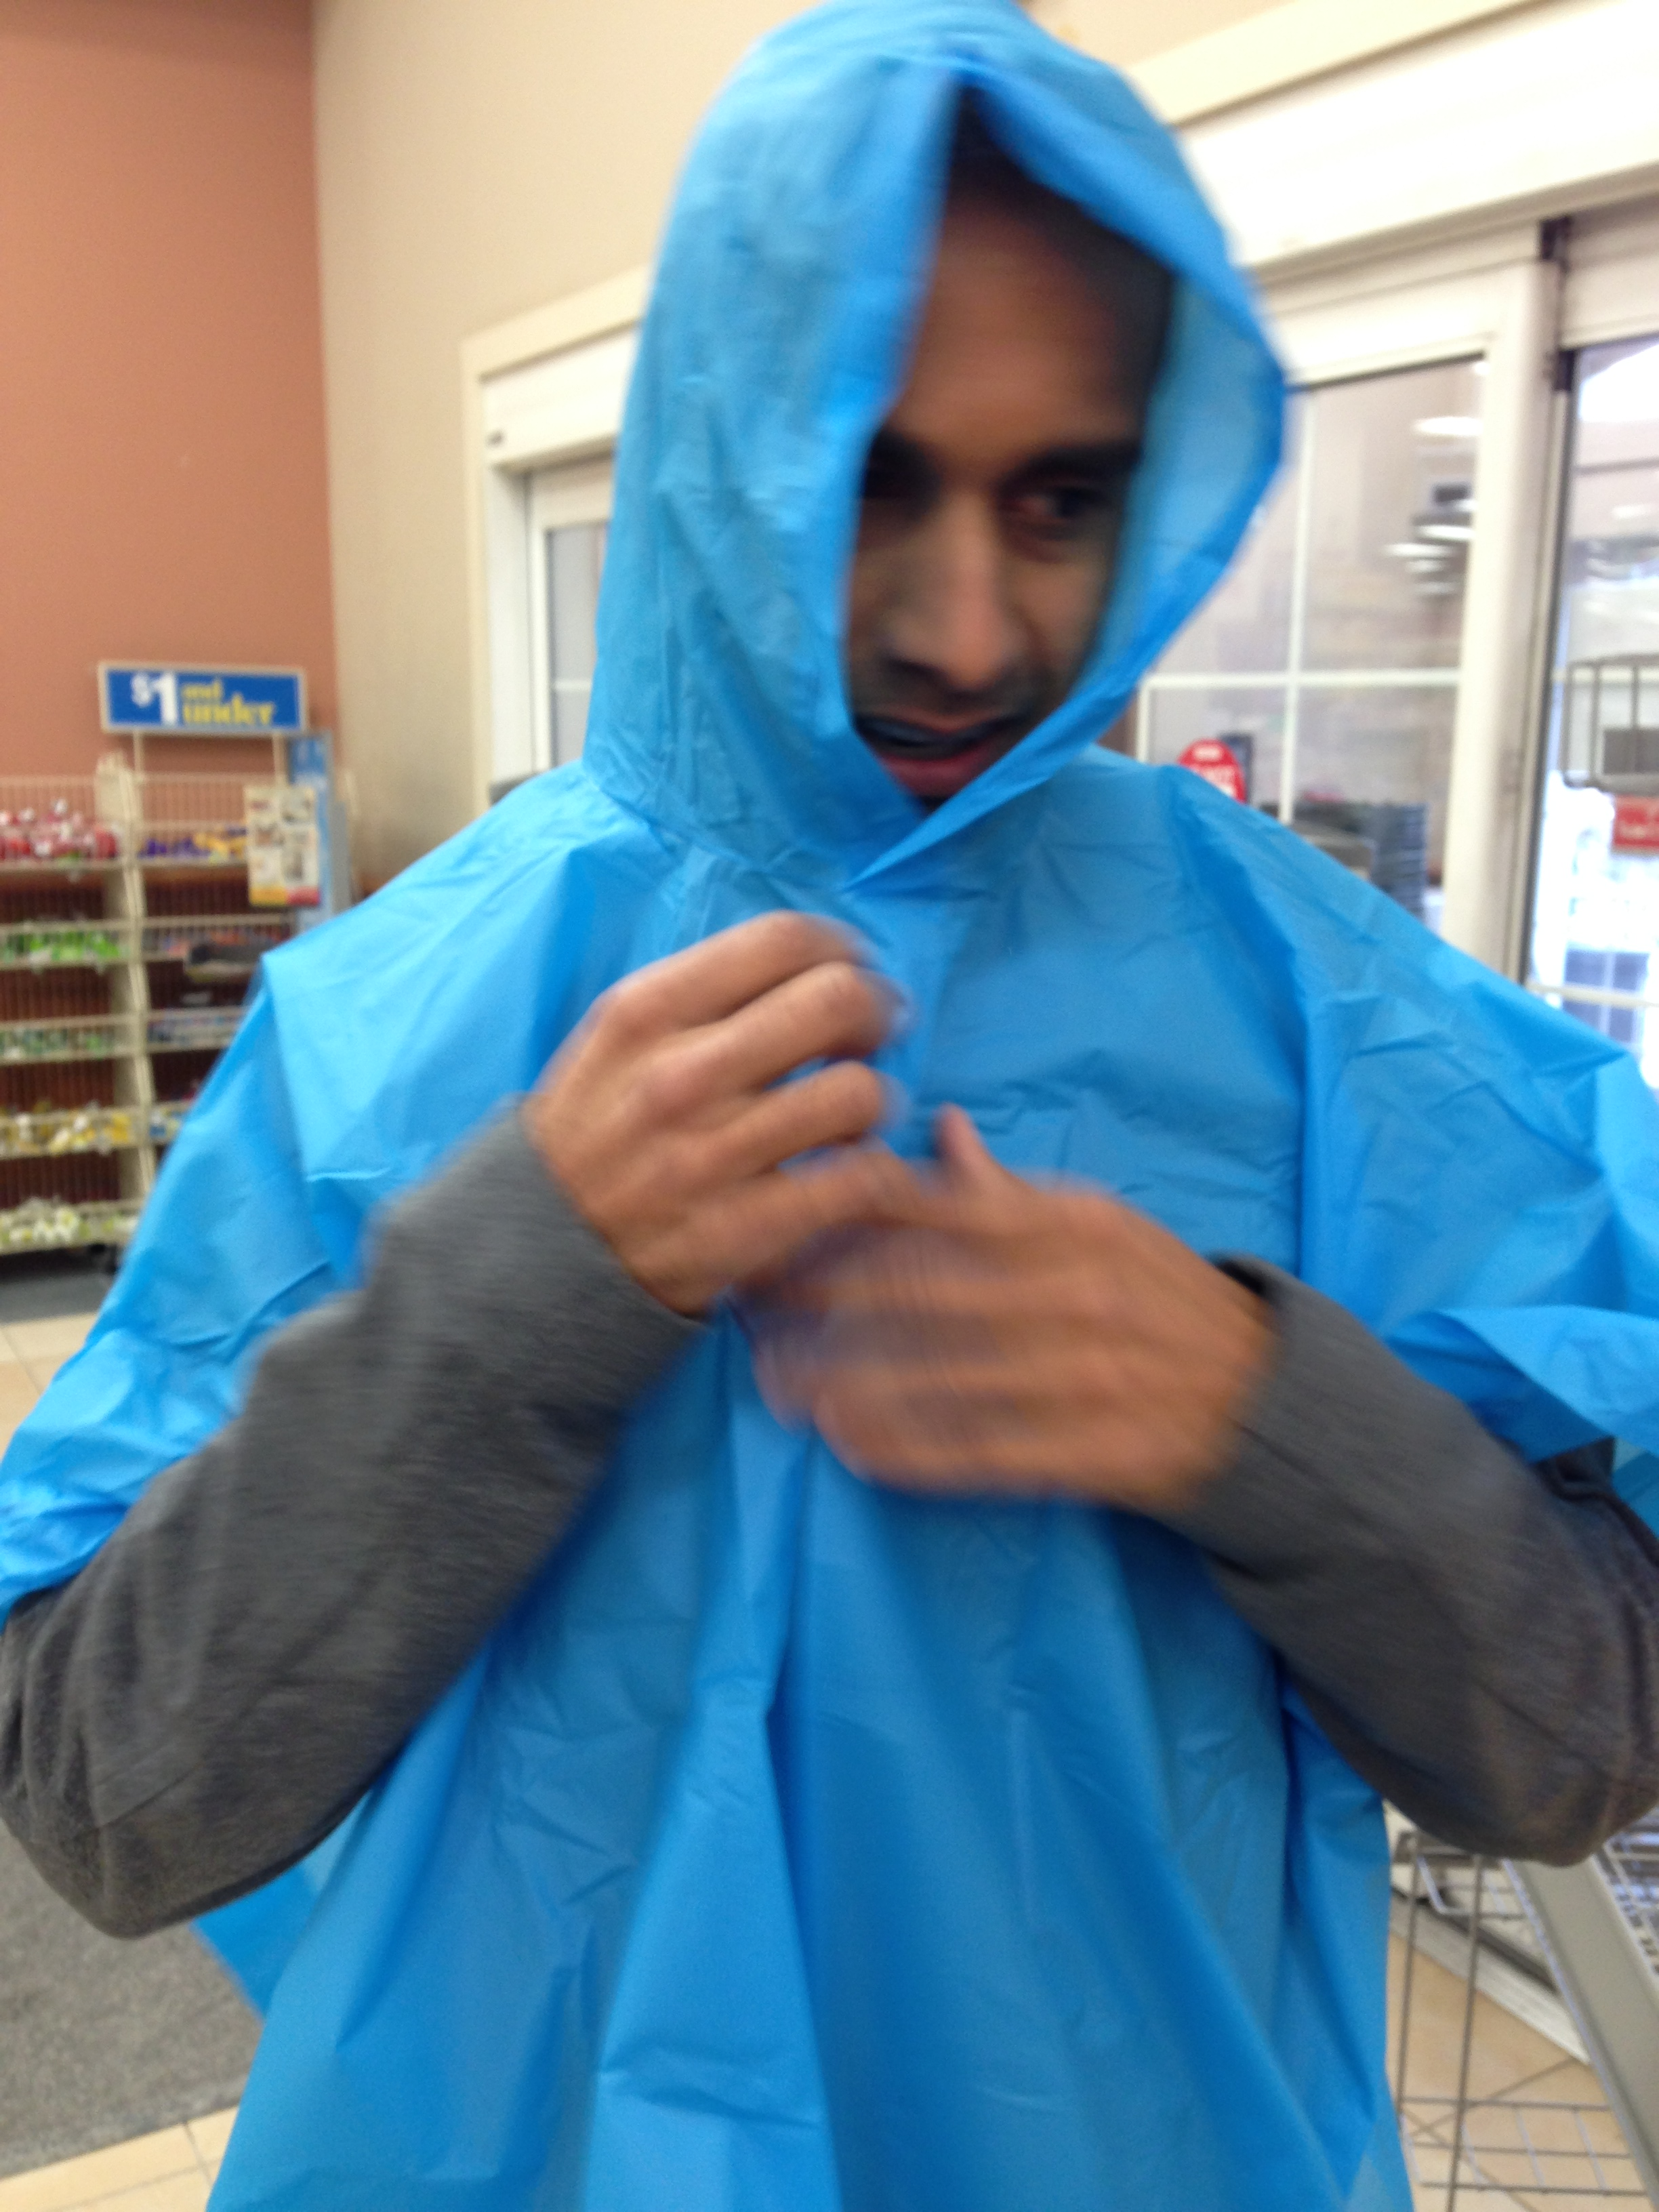 By the grace of Mike Haddad (chief meteorologist of Storm Watch 9 team), we slipped back to CA shortly before the brutality of winter storm Hercules. We did, however, have one rather diluvial day, for which this child-sized poncho was bought.